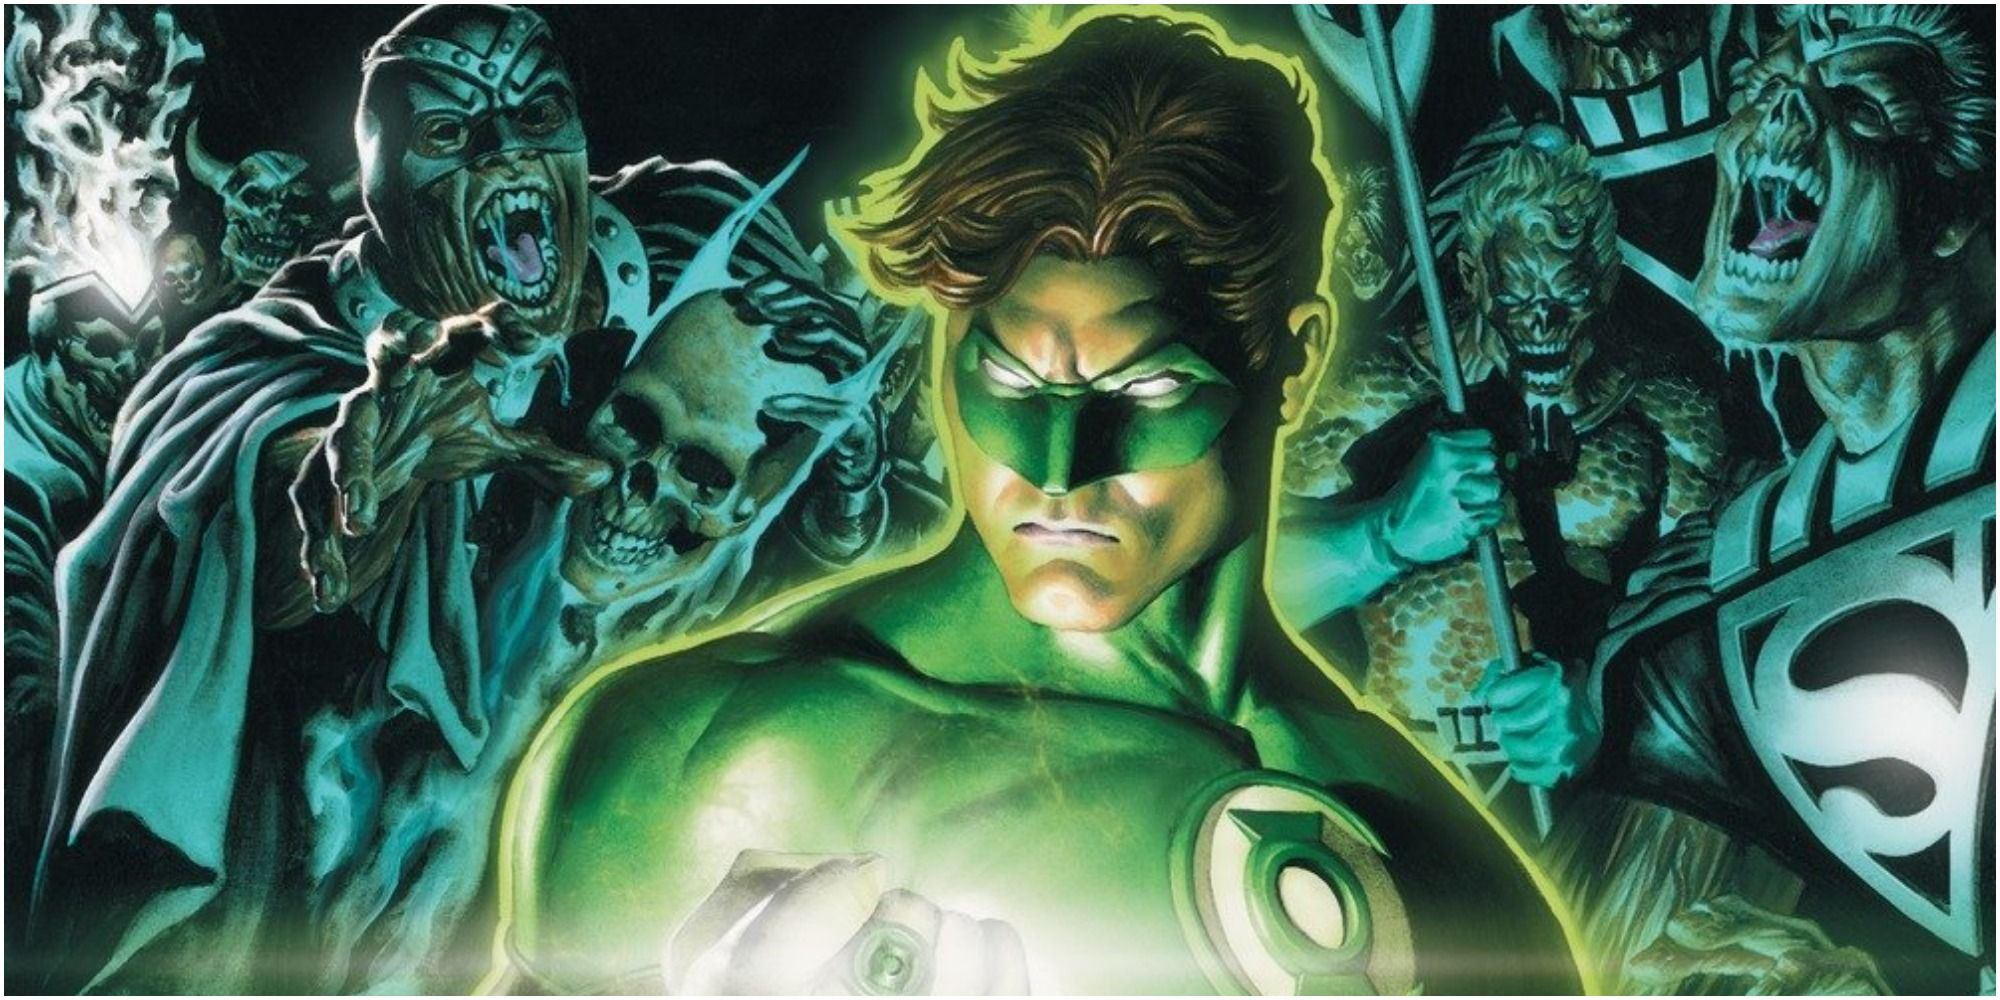 Blackest Night's Tim Seeley Reveals Where He Drew the Line | CBR